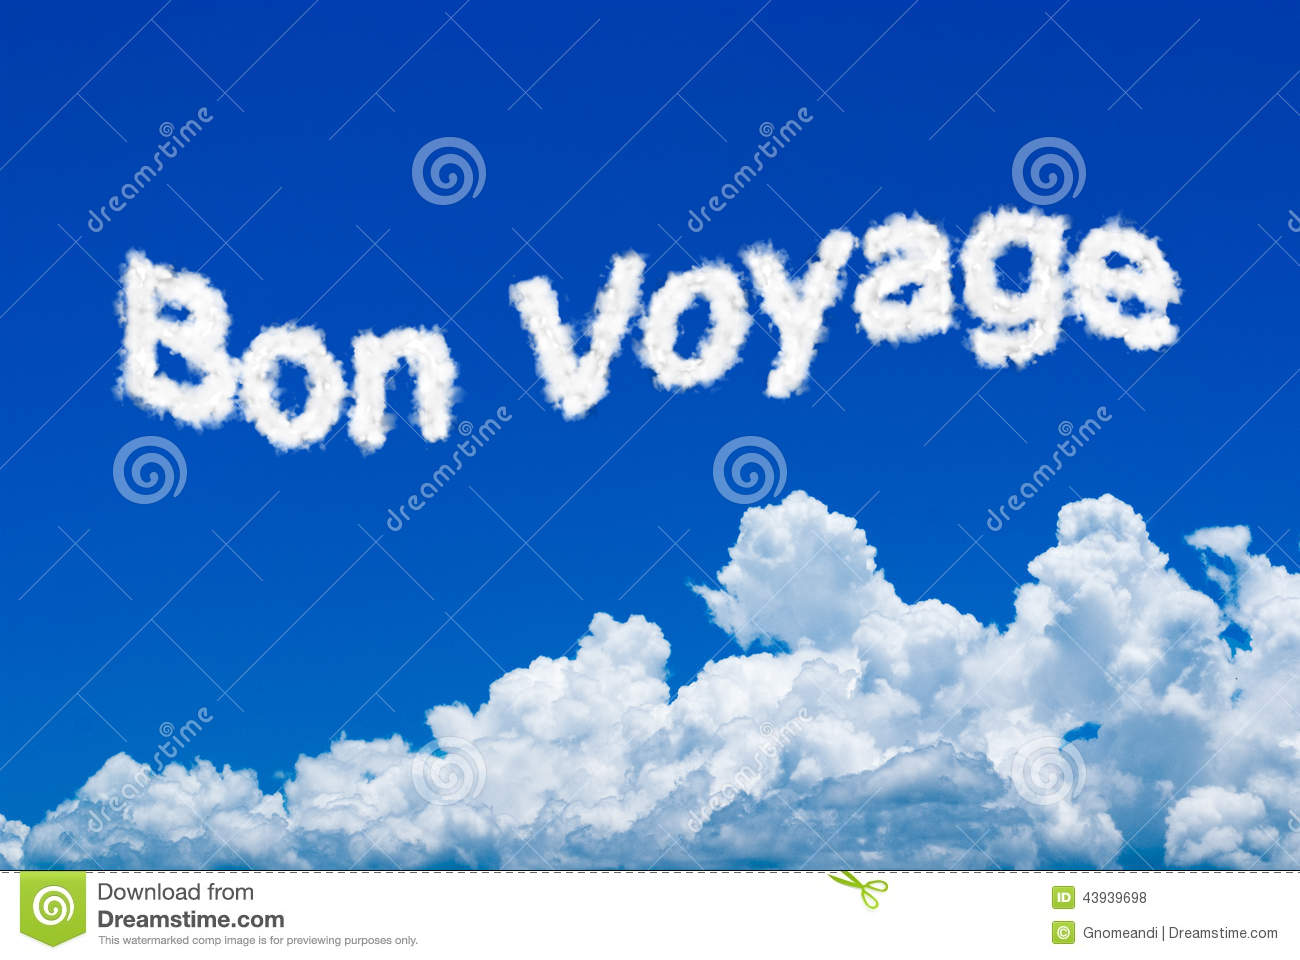 Bon Voyage message written in the cloud form on the sky.